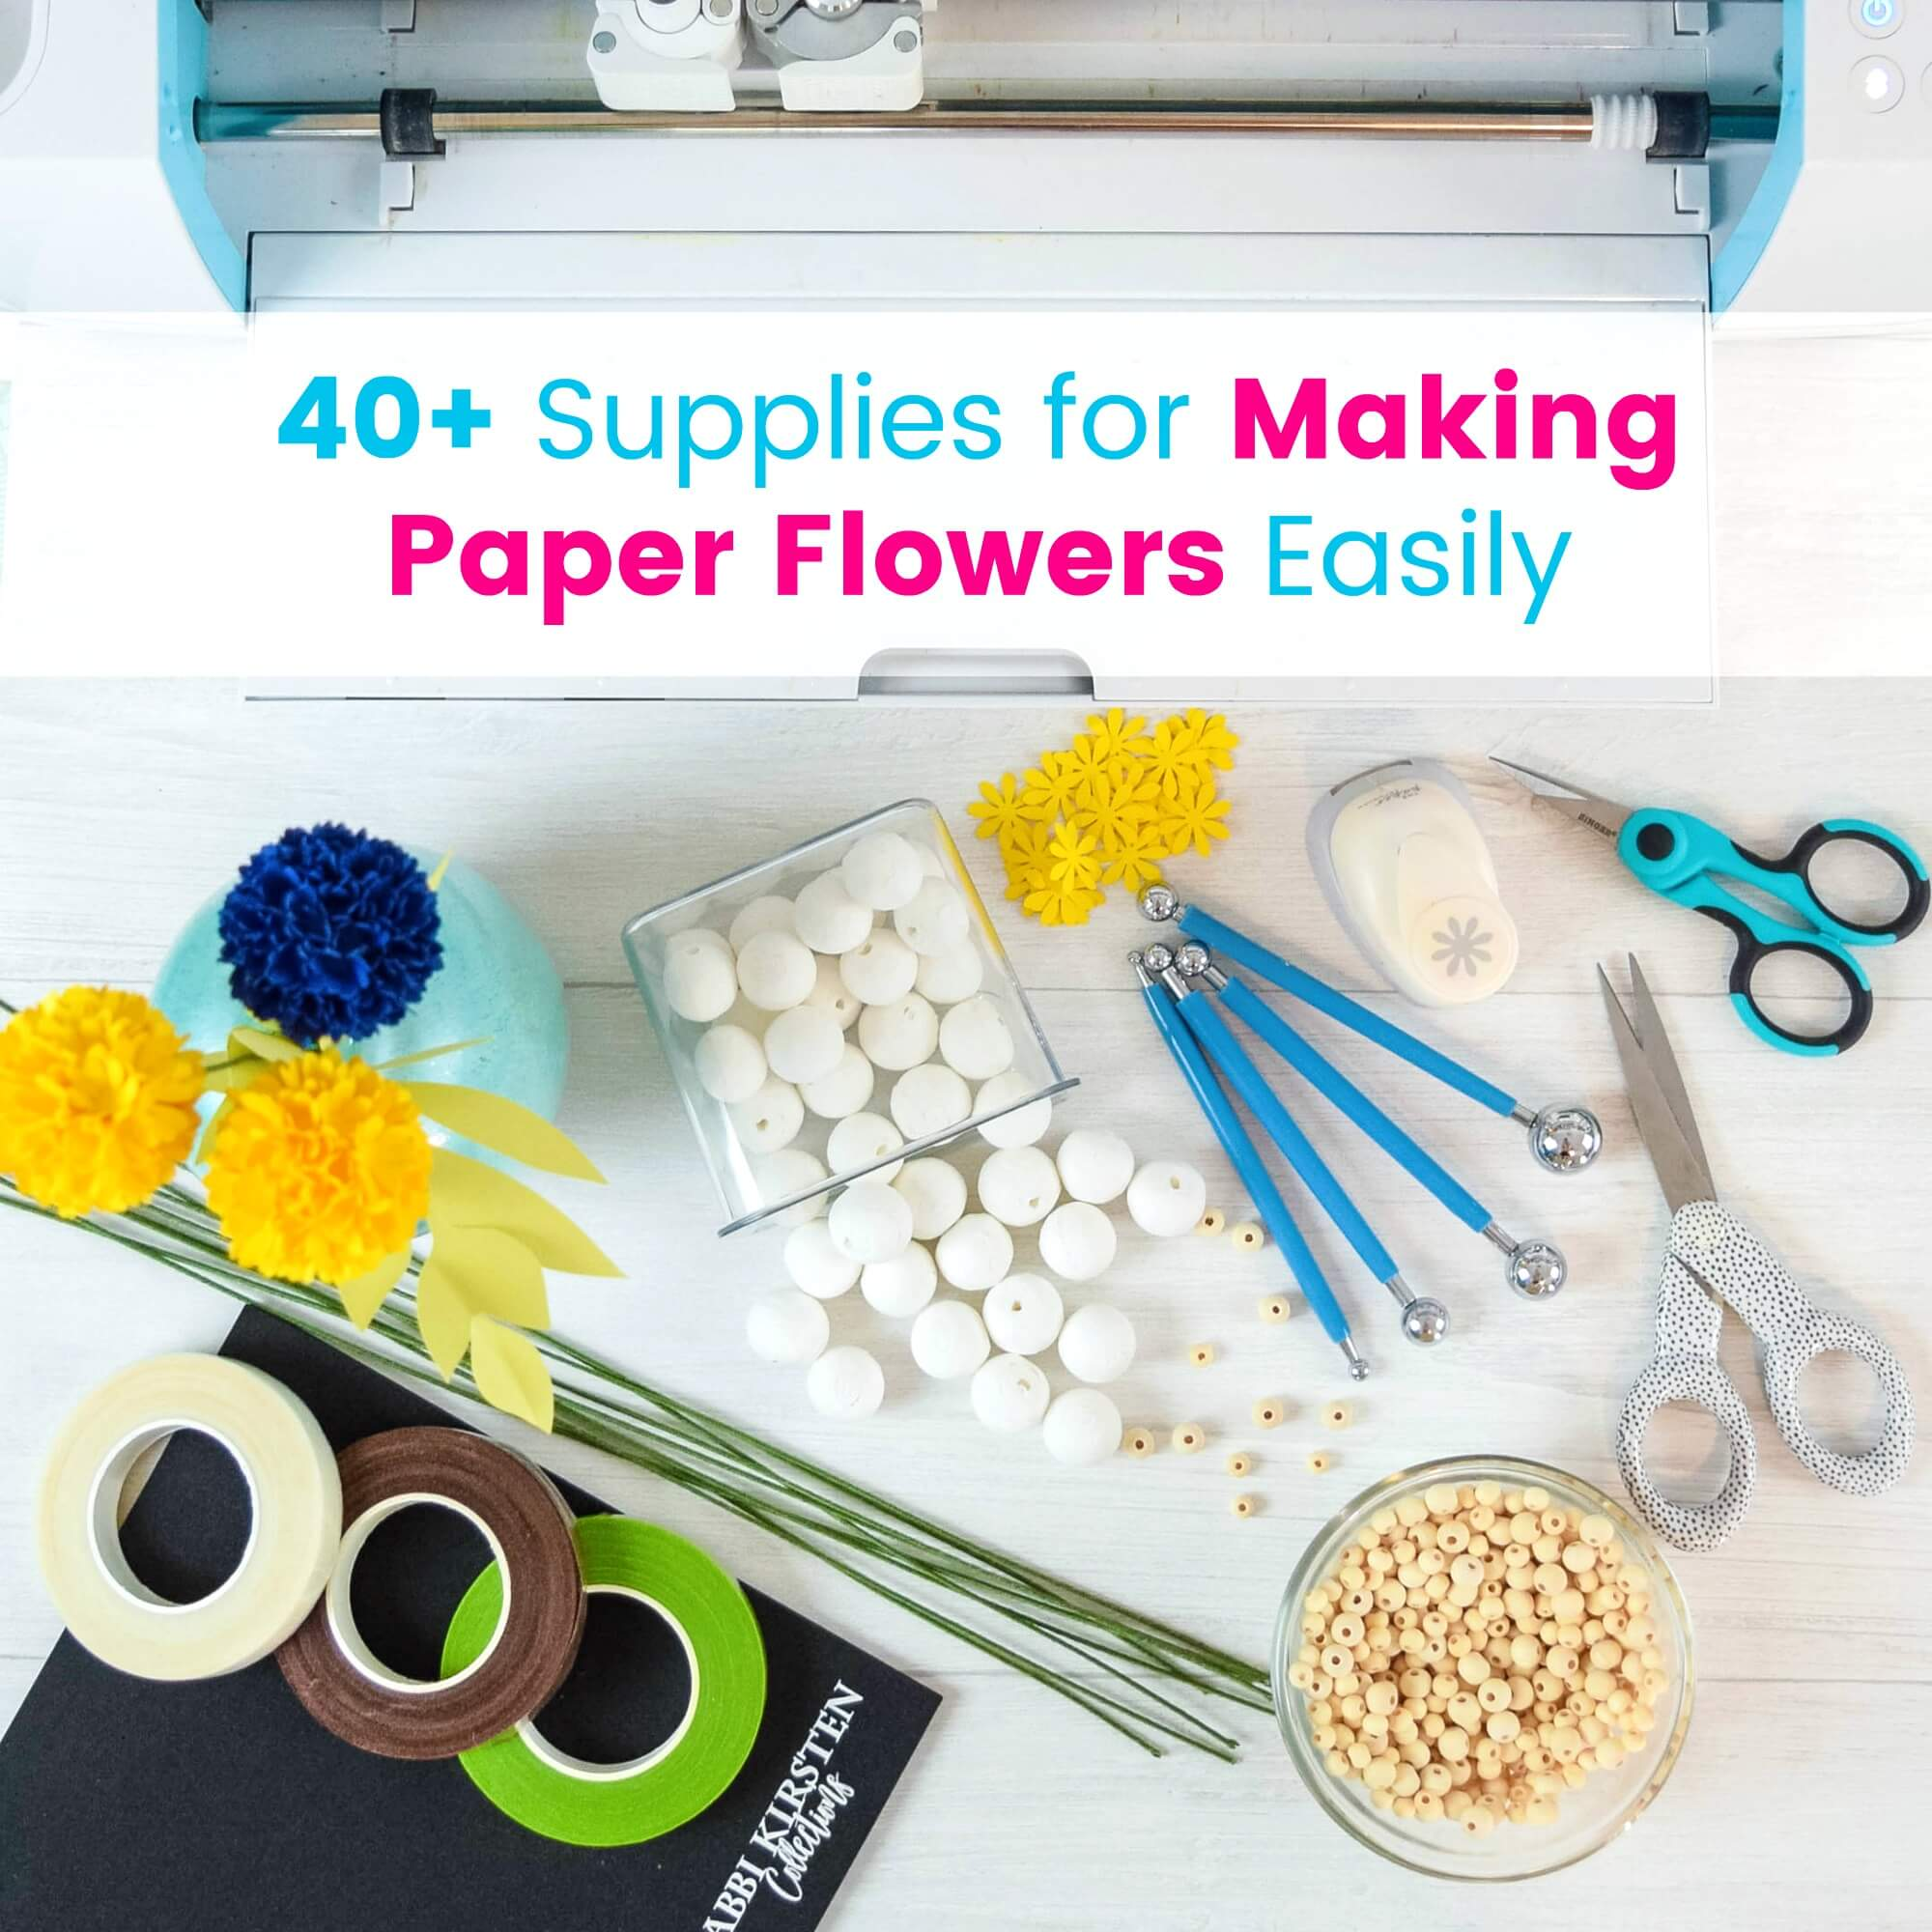 DIY Paper Flower Supplies: Step by Step Guide to Crafting Realistic Blooms